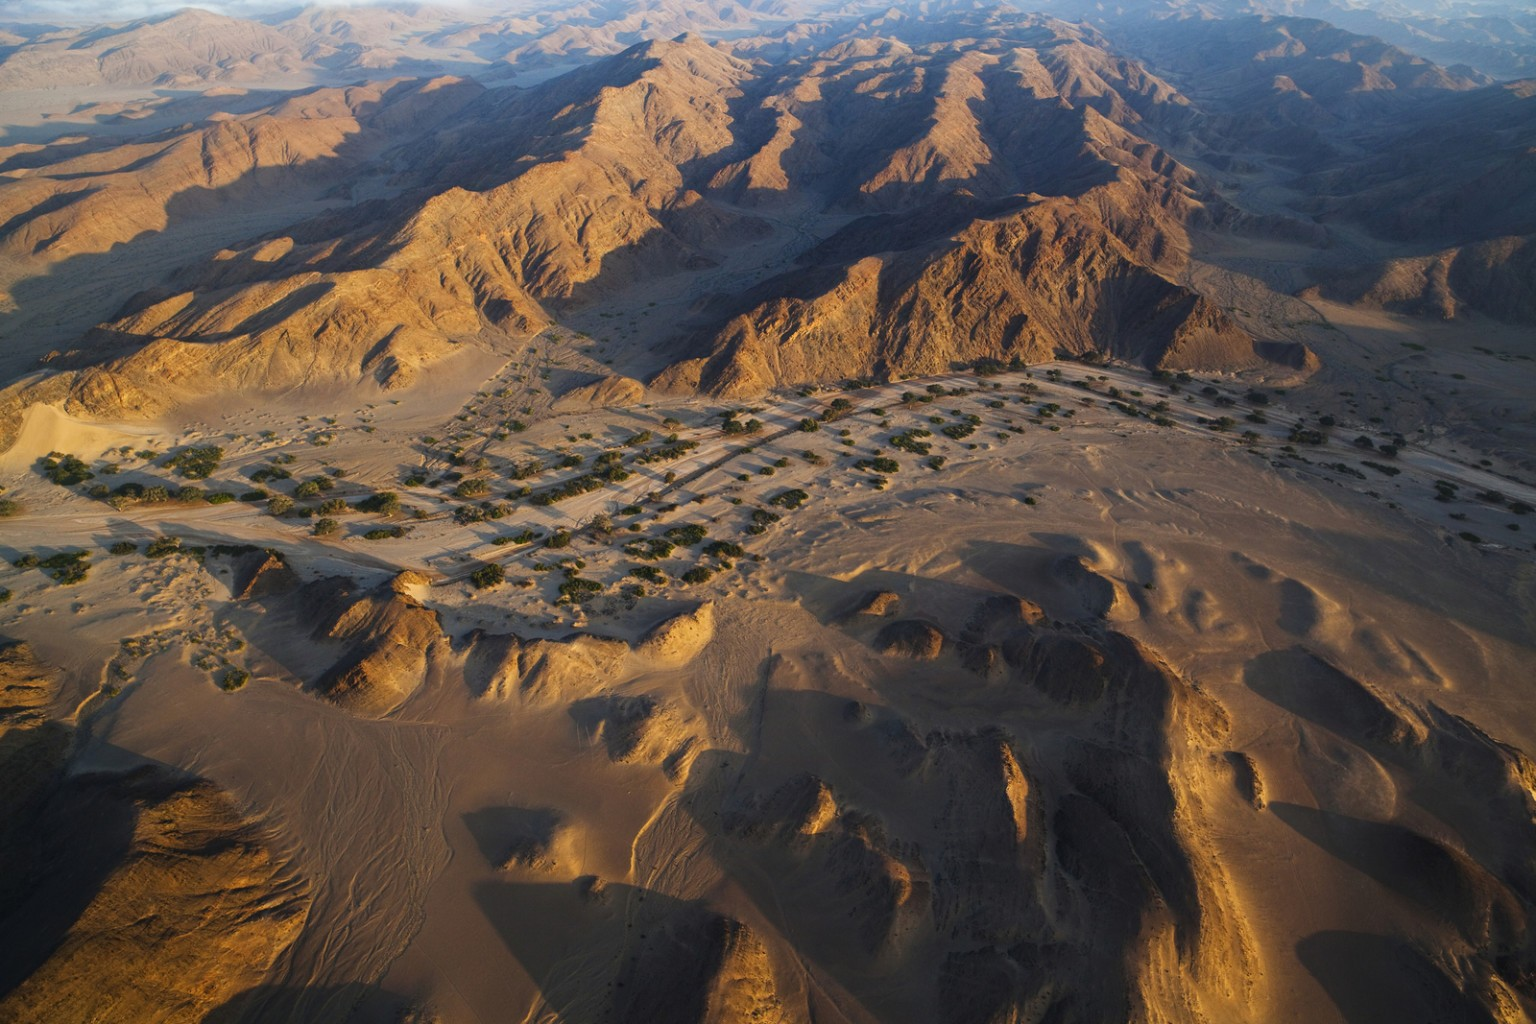 Image: Namibia; Namib Desert, Skeleton Coast, aerial view of Hoanib River valley, habitat for desert elephants